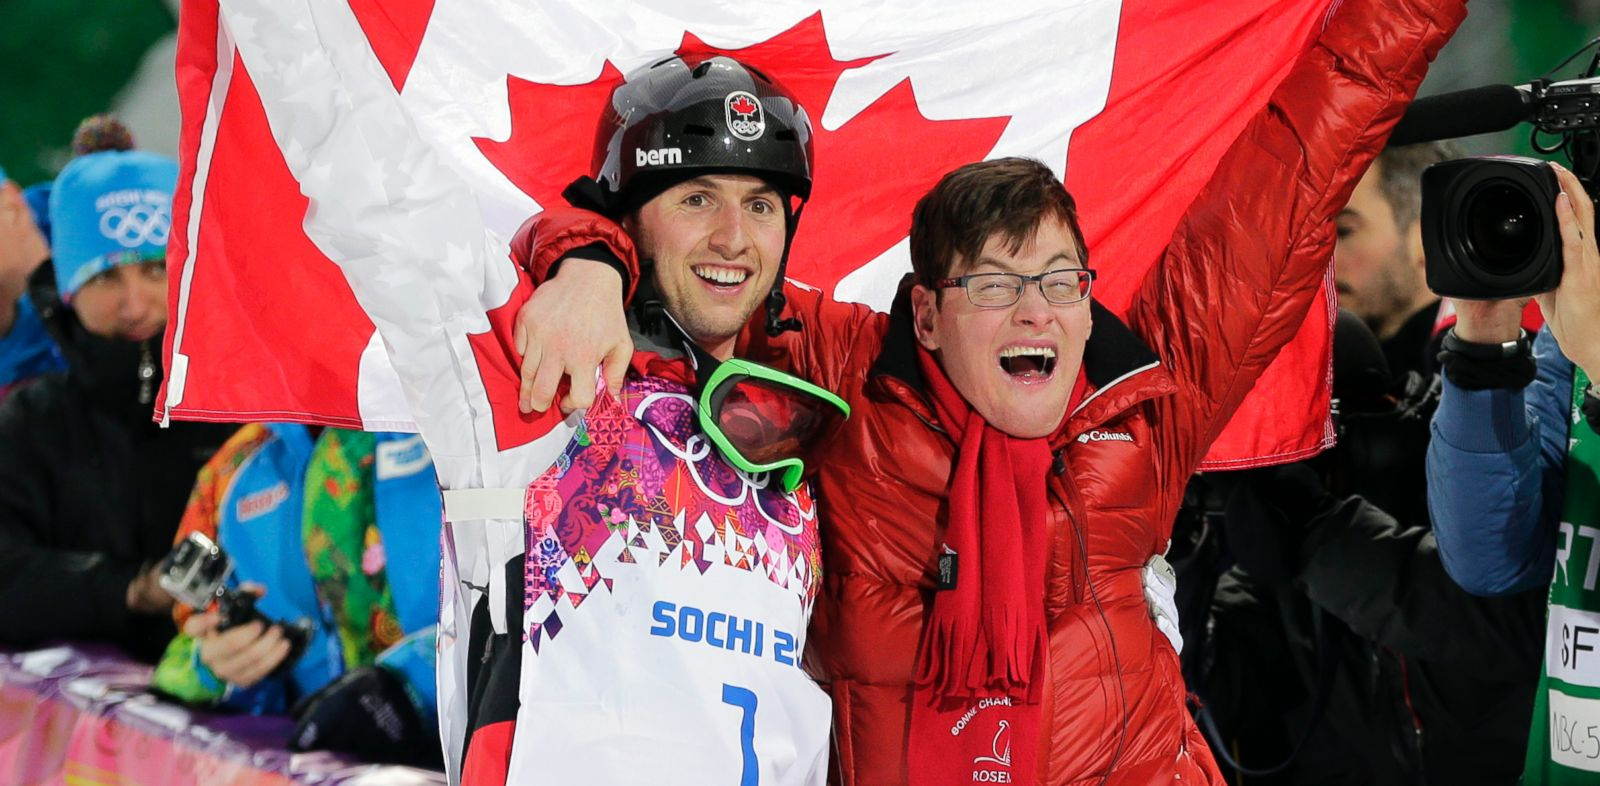 PHOTO: Canadas Alex Bilodeau, left, celebrates with his brother Frederic after winning the gold medal in the mens moguls final at the Rosa Khutor Extreme Park at the 2014 Winter Olympics, Monday, Feb. 10, 2014, in Krasnaya Polyana, Russia.